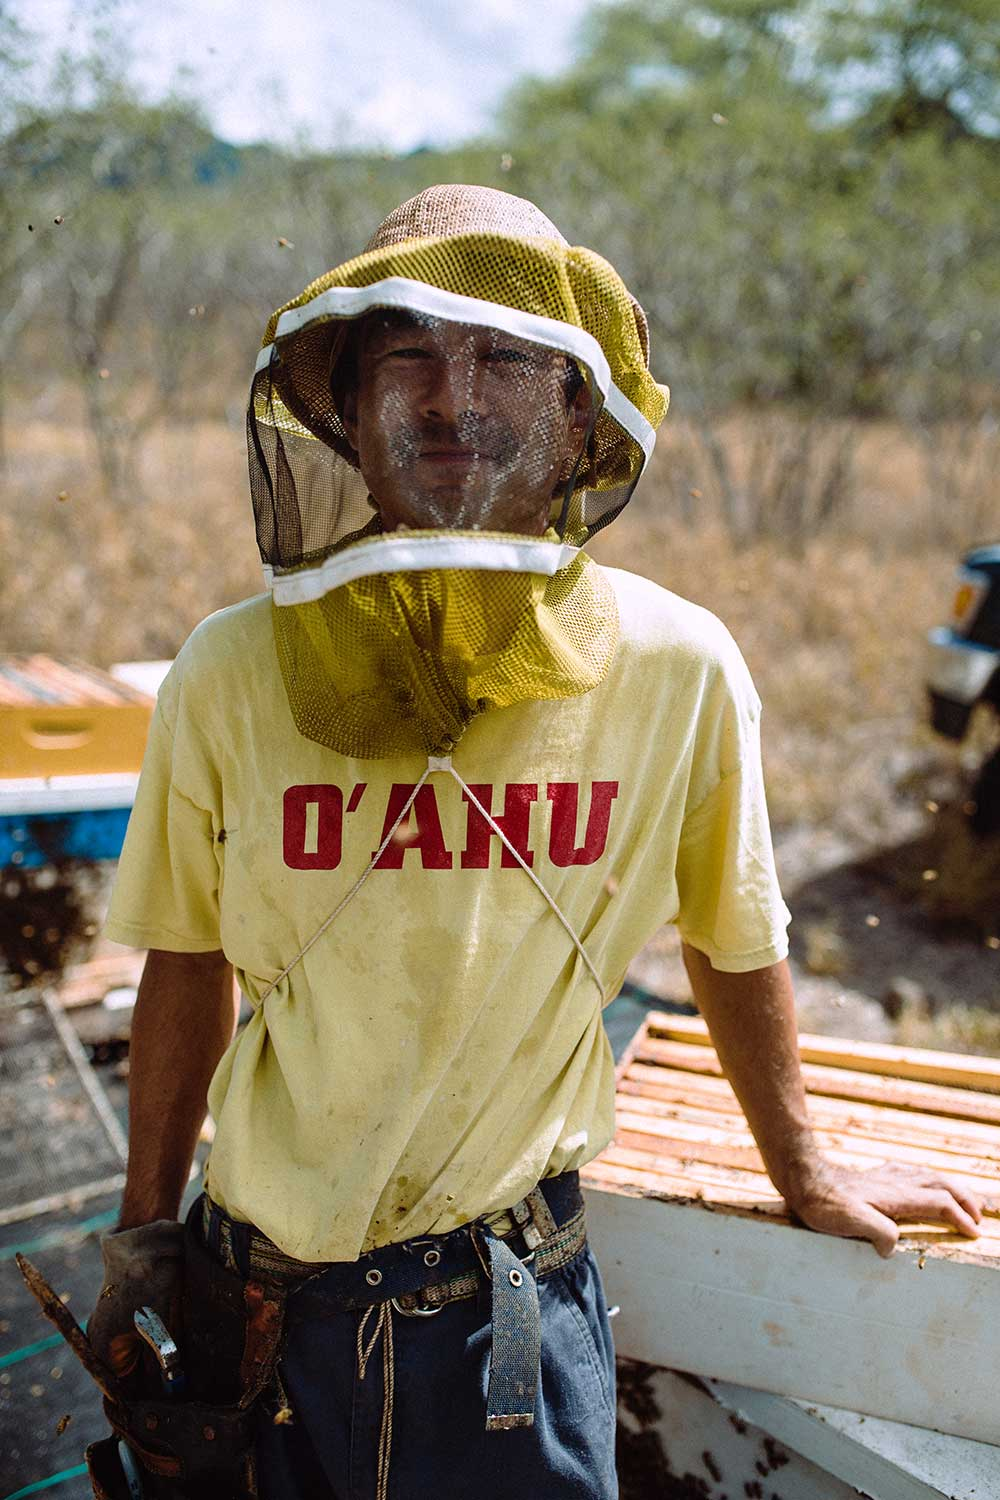 Man in faded yellow shirt with red type that says O'ahu, wears a protective netted had over his face to shield bees